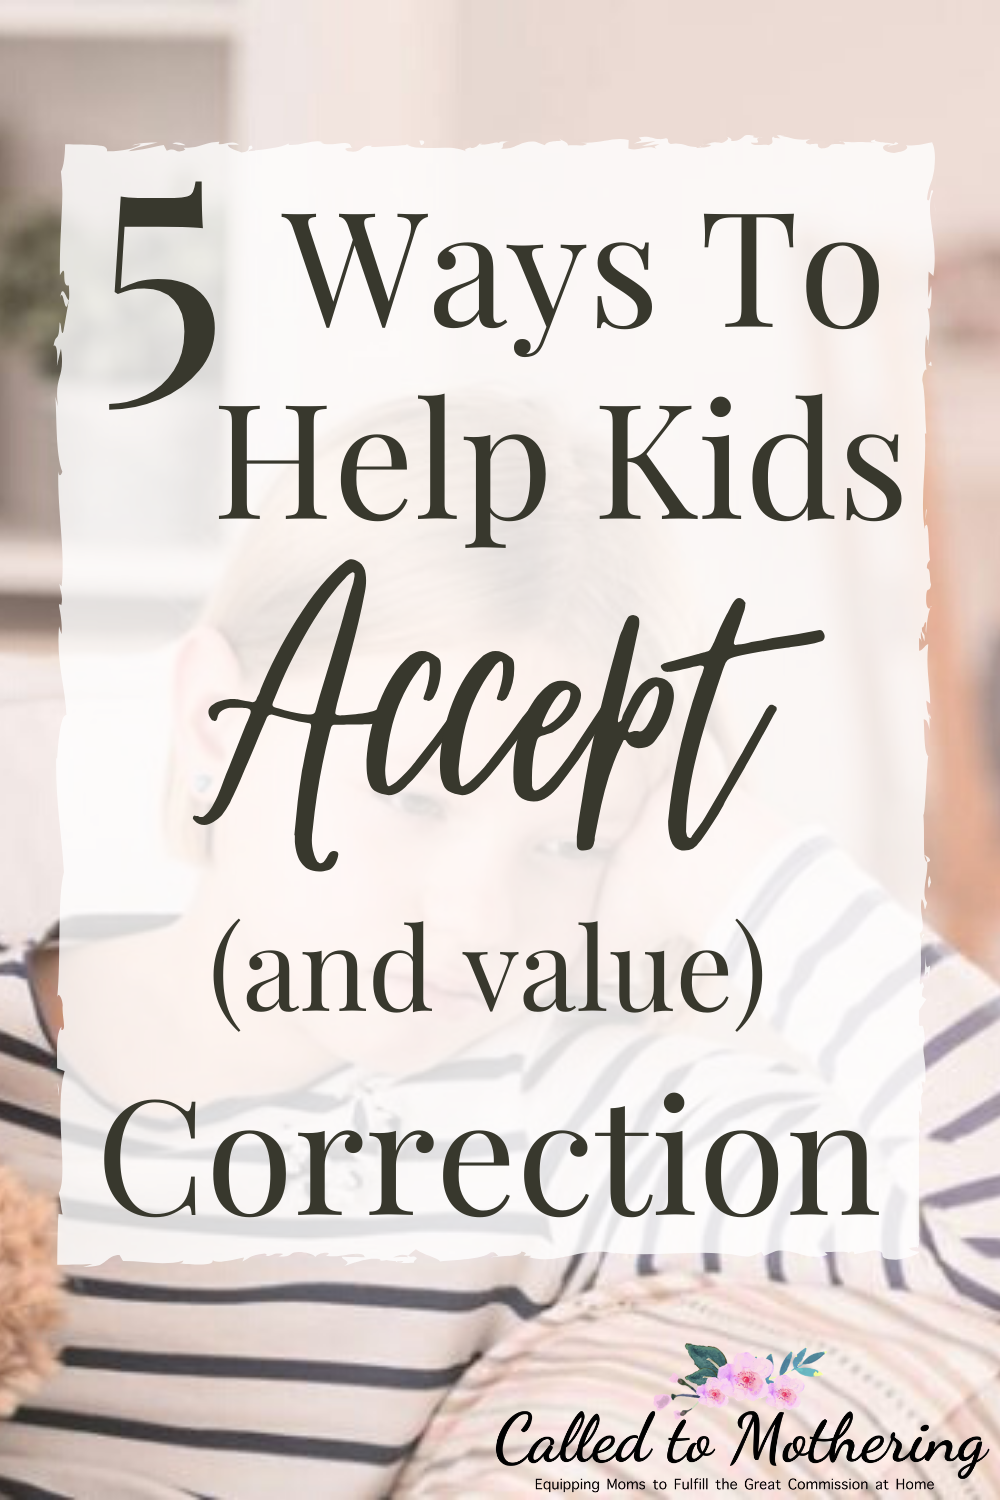 Does your child respond to correction with defensiveness and a bad attitude? These 5 tips will help kids accept and value being corrected, as well as think through their behavior. #positivediscipline #disciplineforkids #positiveparenting #parentinghacks